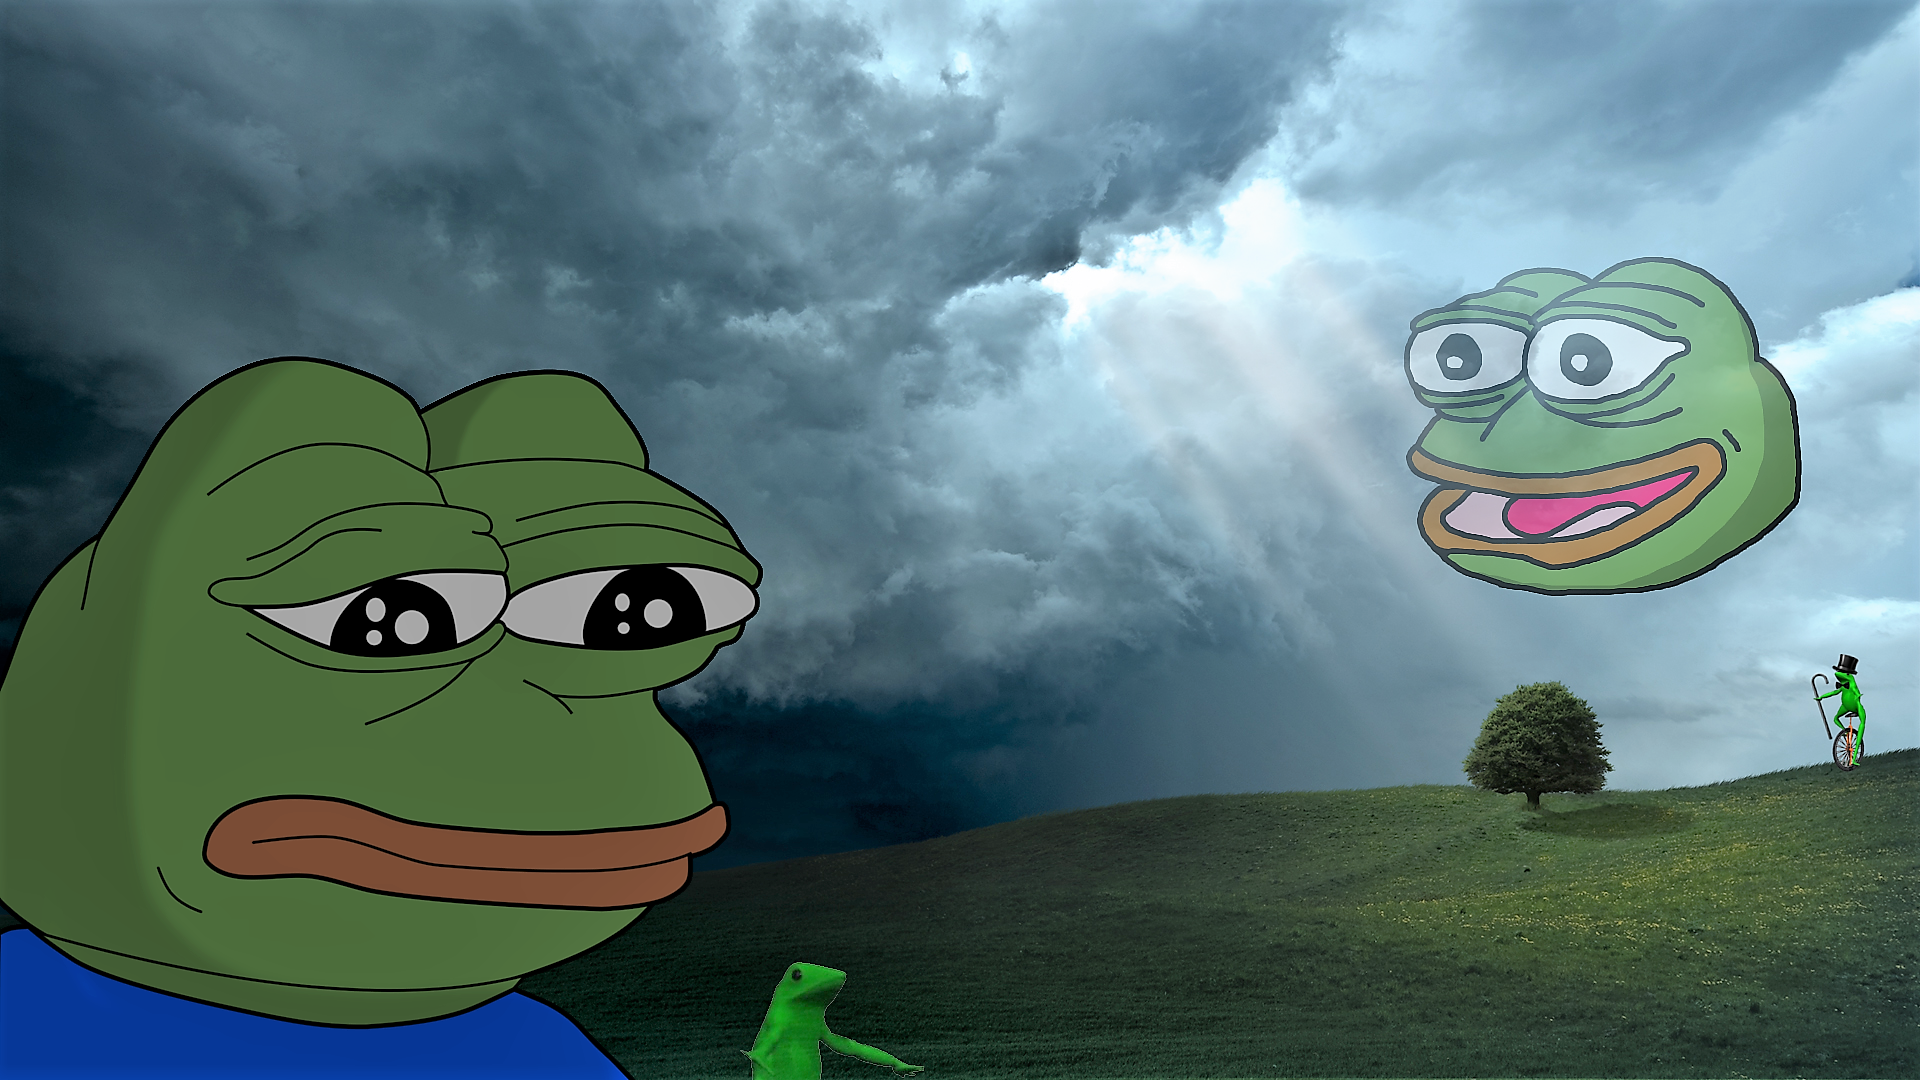 pepe the frog is killed off to avoid being an alt right symbol